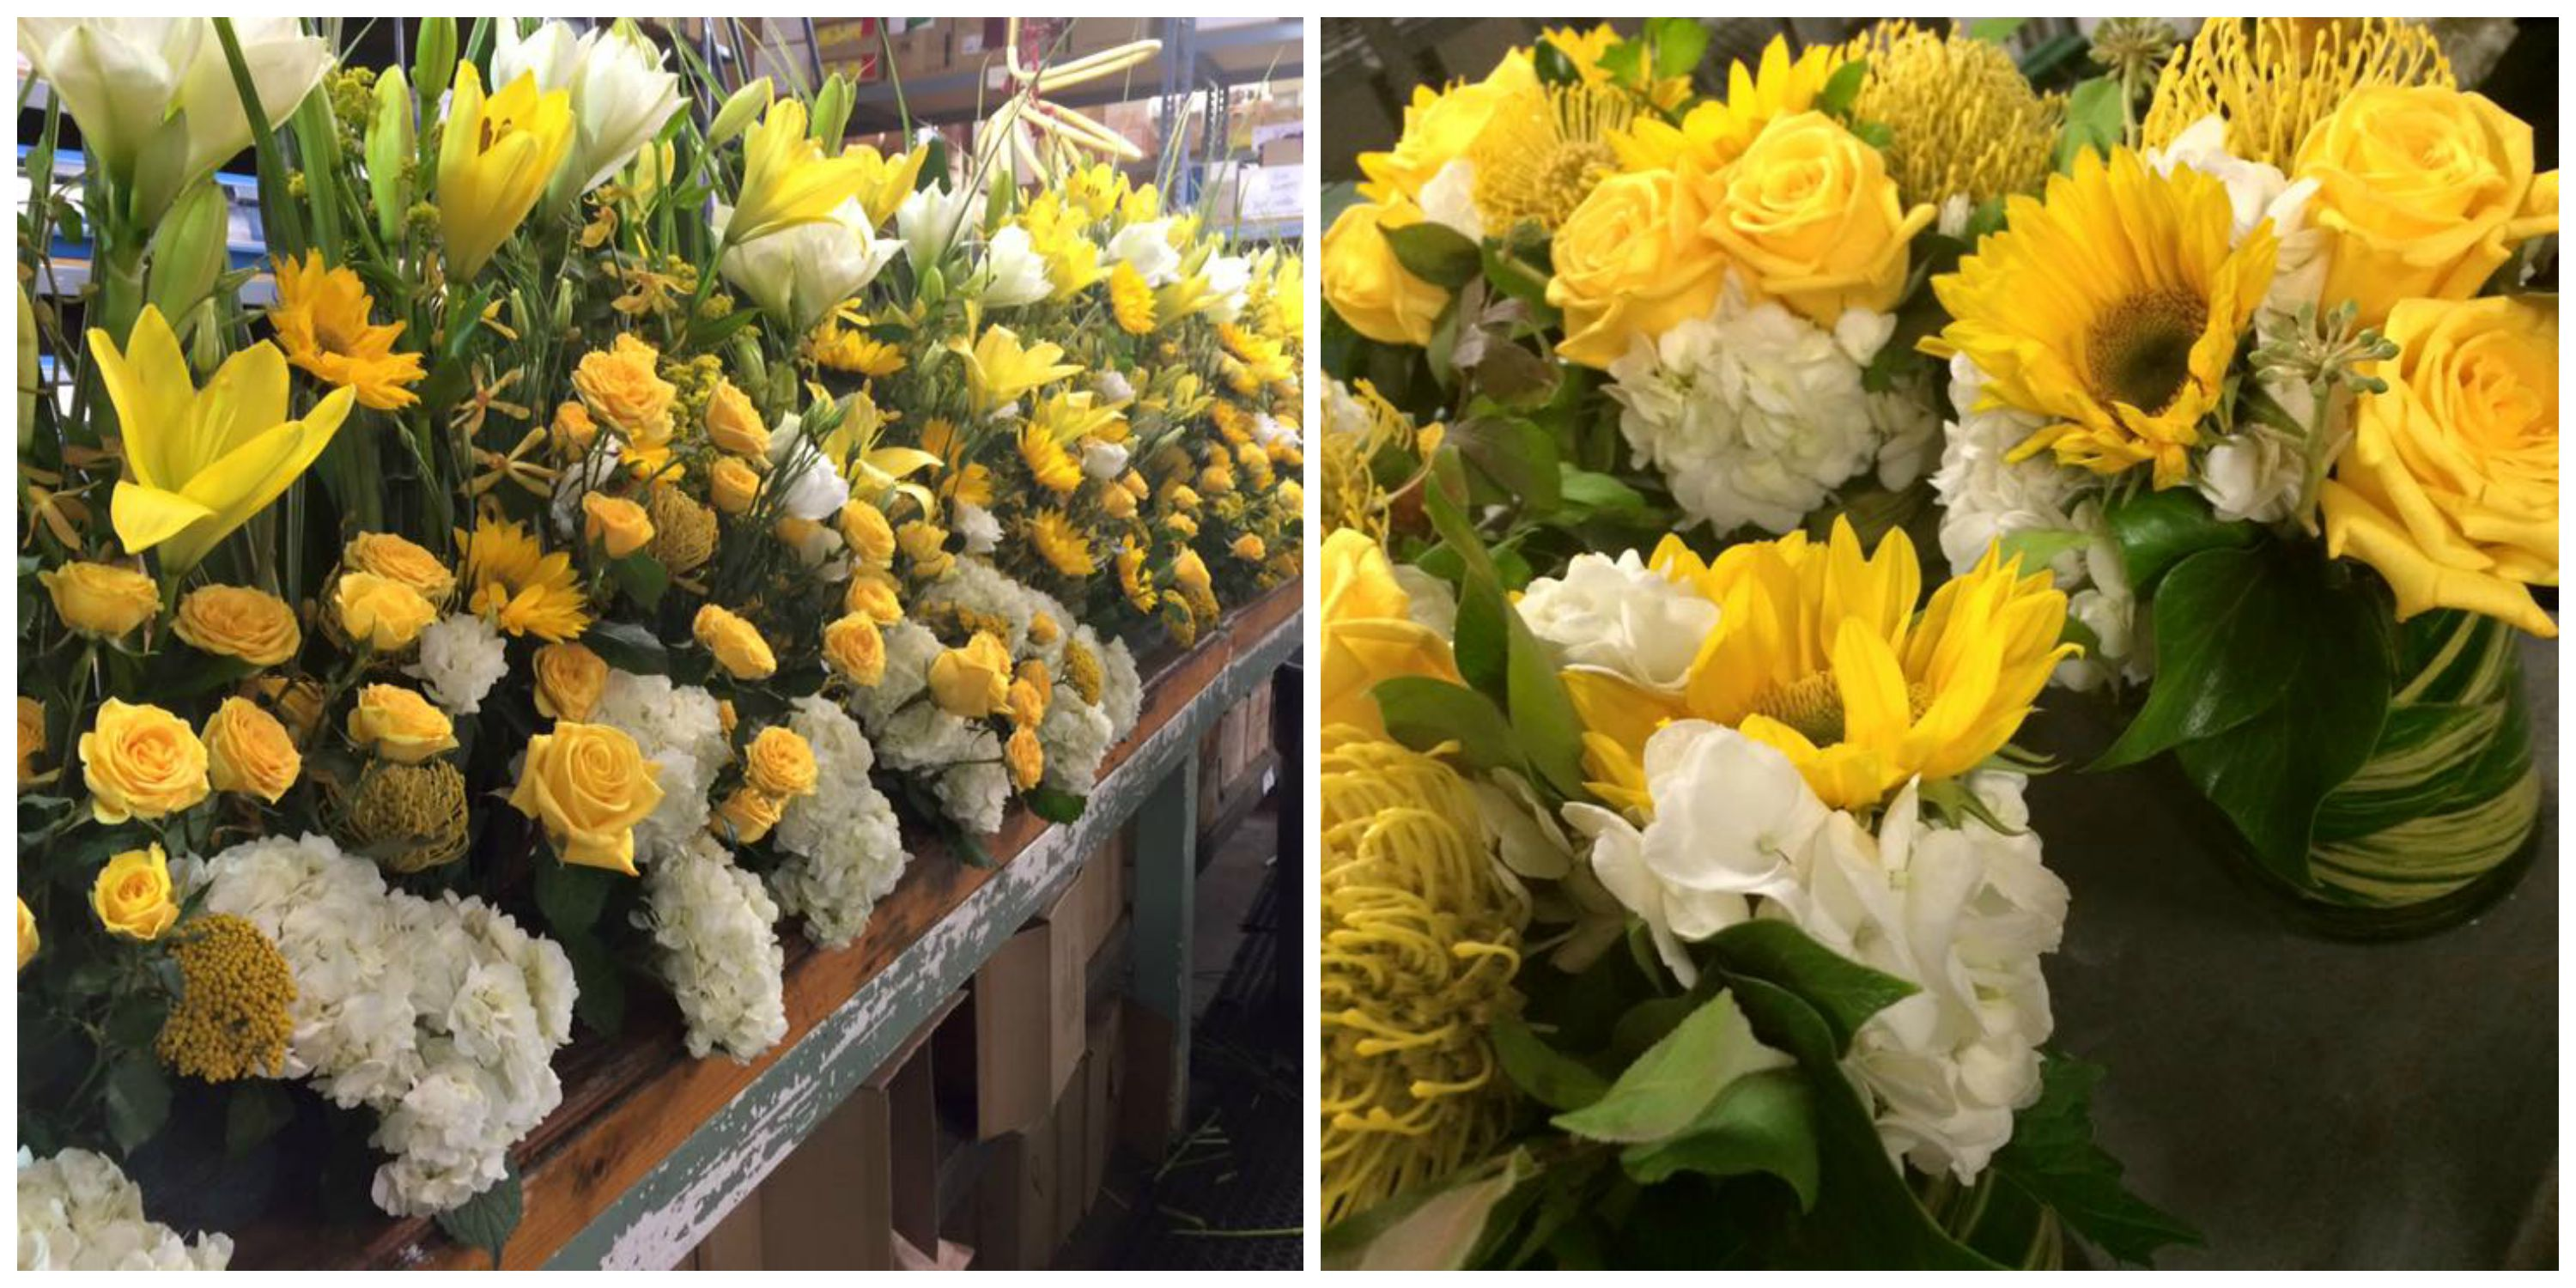 Robertson's design studio was buzzing with excitement as we prepared the flowers for a portion of the Papal visit.